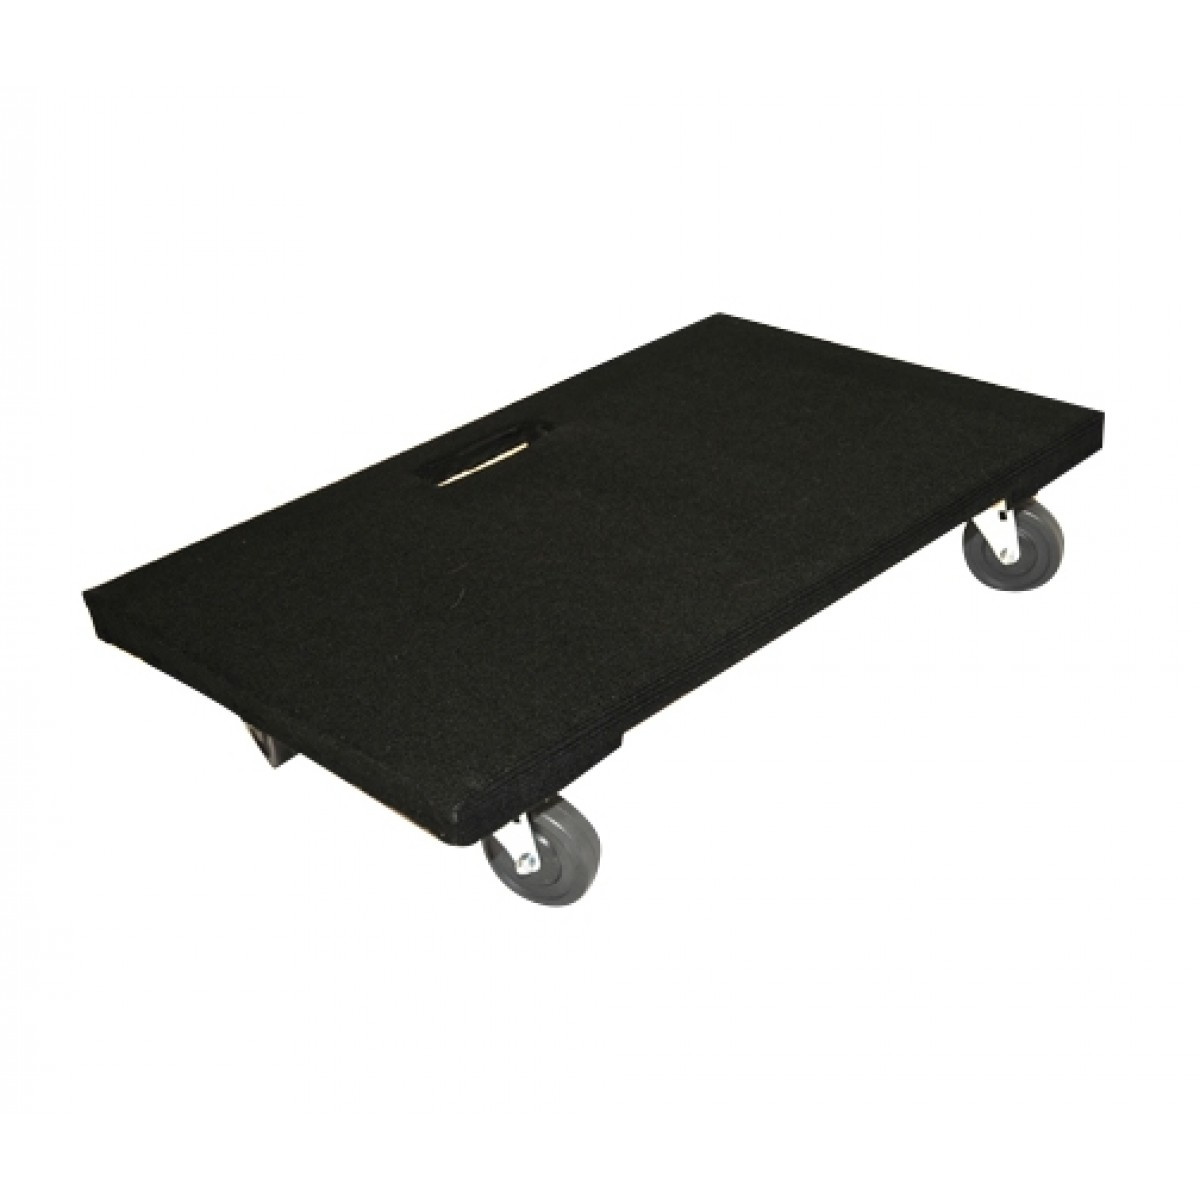 Furniture Dolly Blue 24 X 32 1000lbs